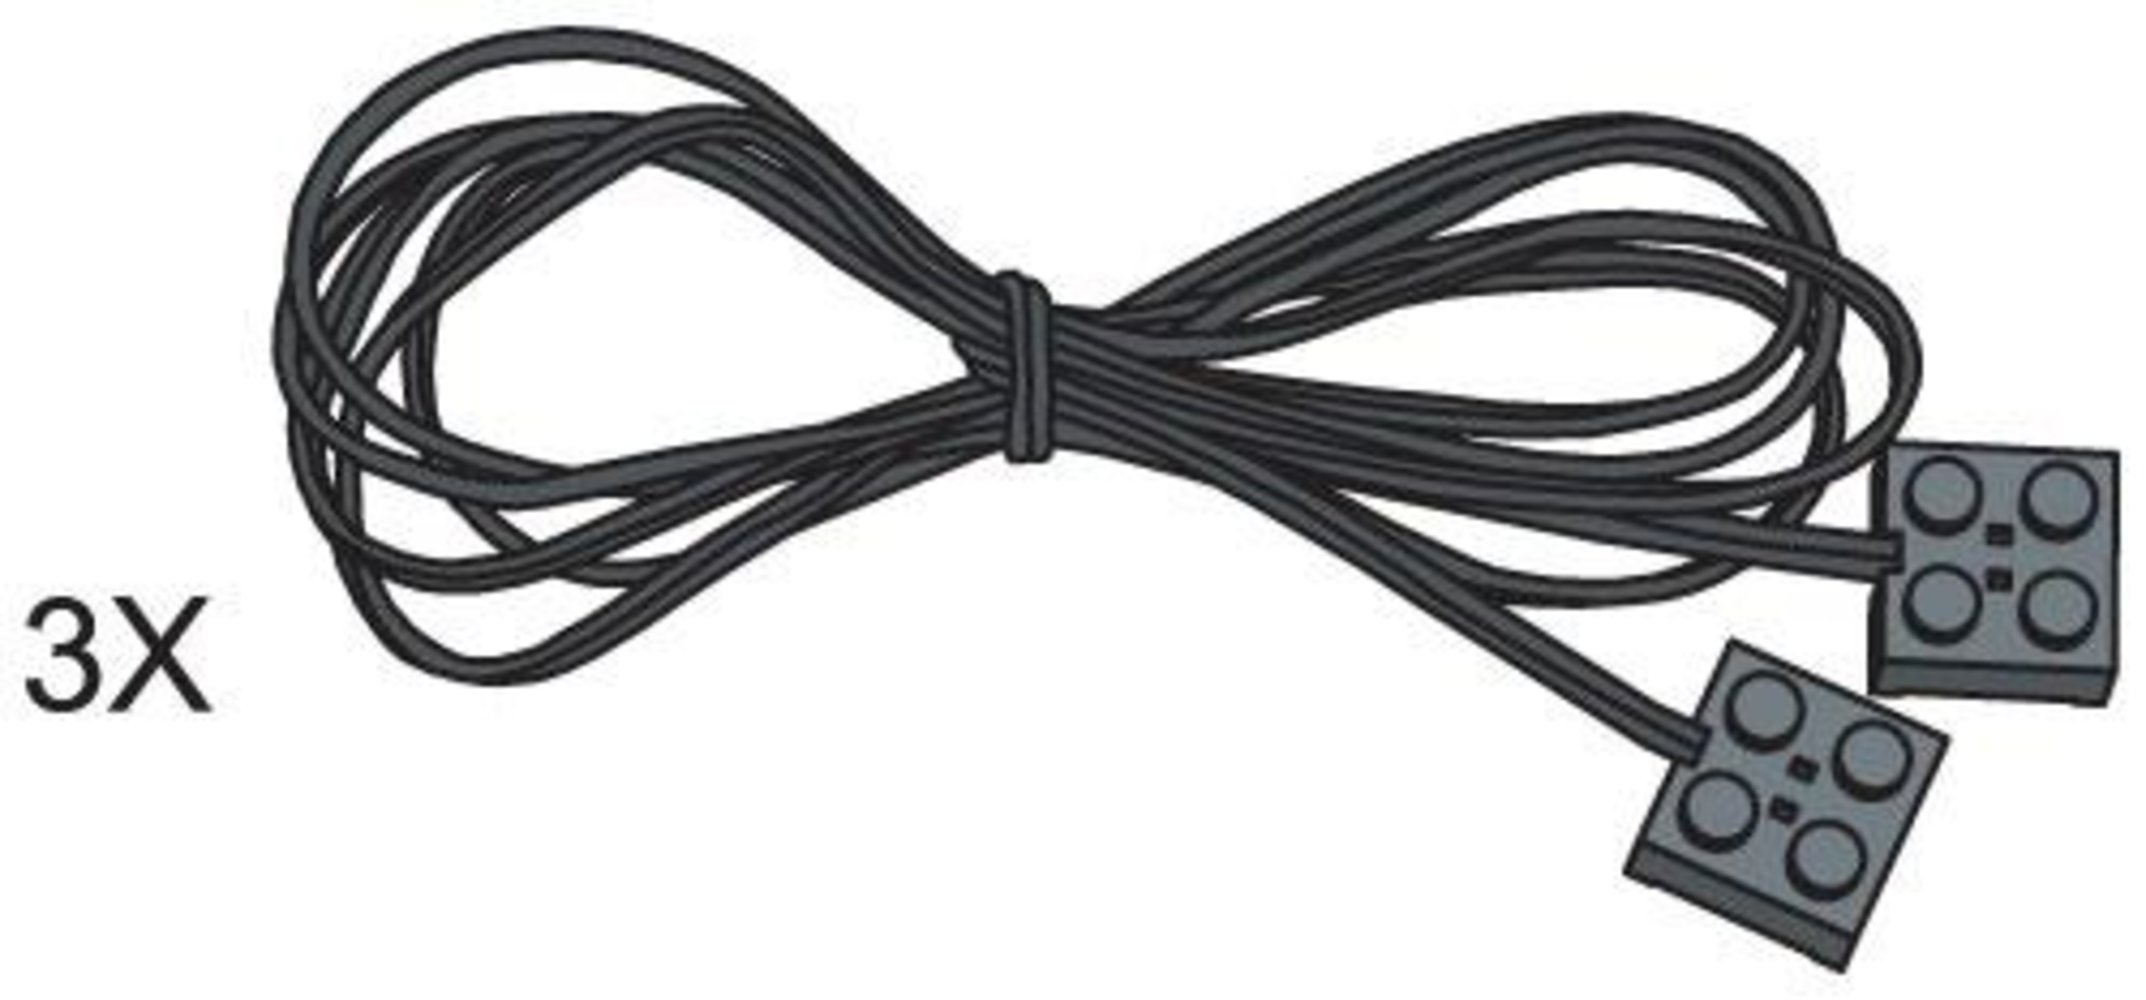 1280 mm Connecting Leads (Pack of 3)